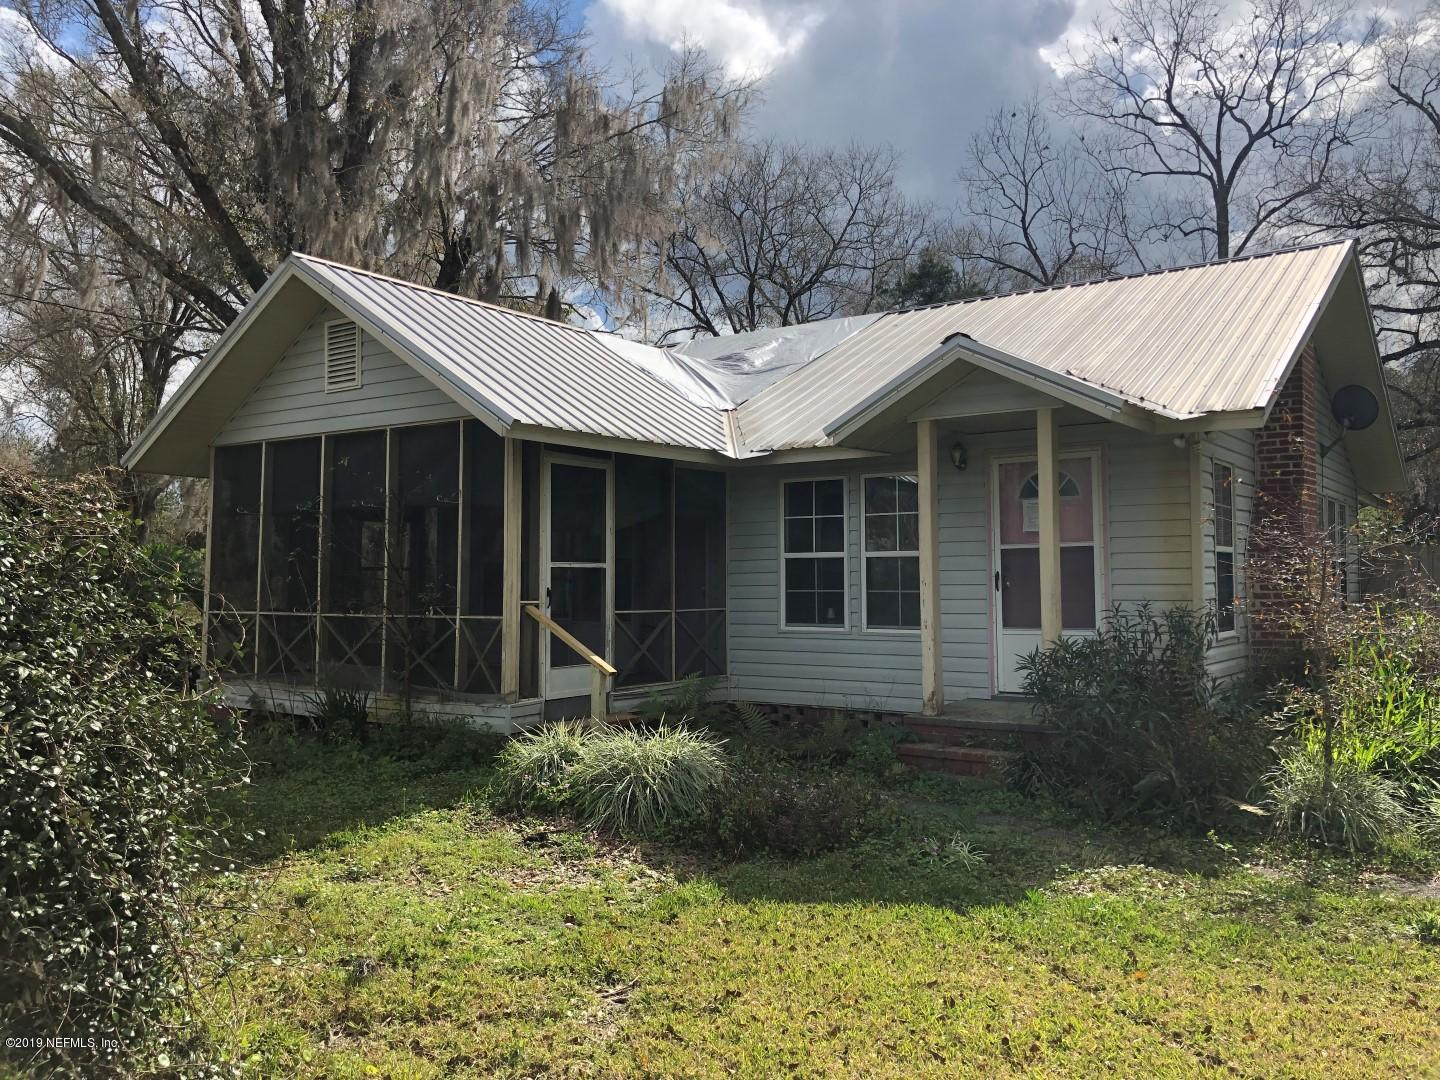 2664 150TH, STARKE, FLORIDA 32091, 3 Bedrooms Bedrooms, ,1 BathroomBathrooms,Residential - single family,For sale,150TH,985938